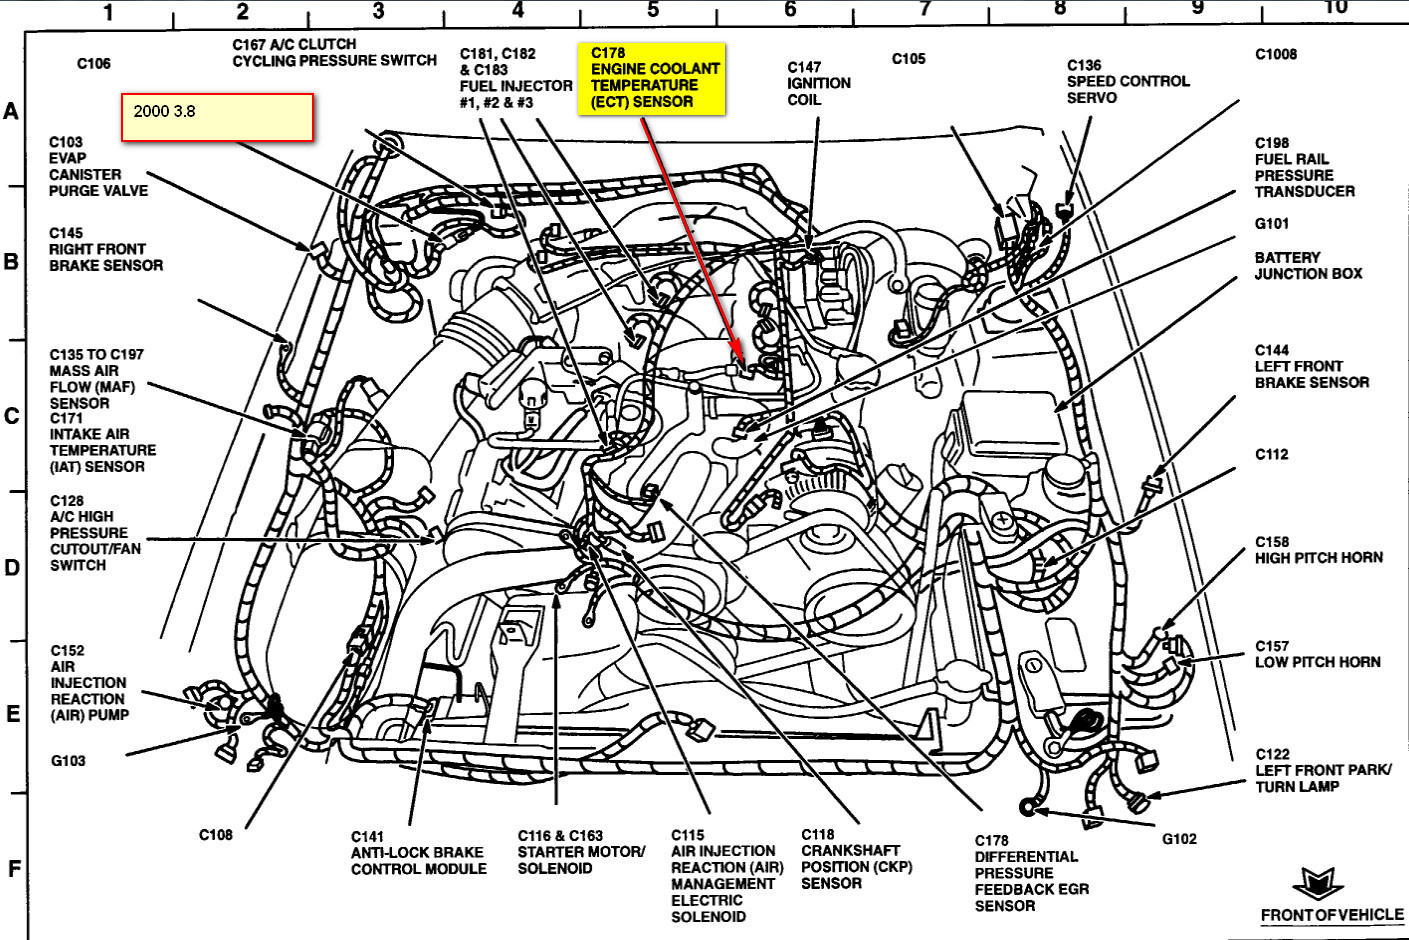 vq35de engine diagram schematics wiring diagrams u2022 rh seniorlivinguniversity co vq35de engine wiring diagram Nissan Altima 2.5 Engine Diagram